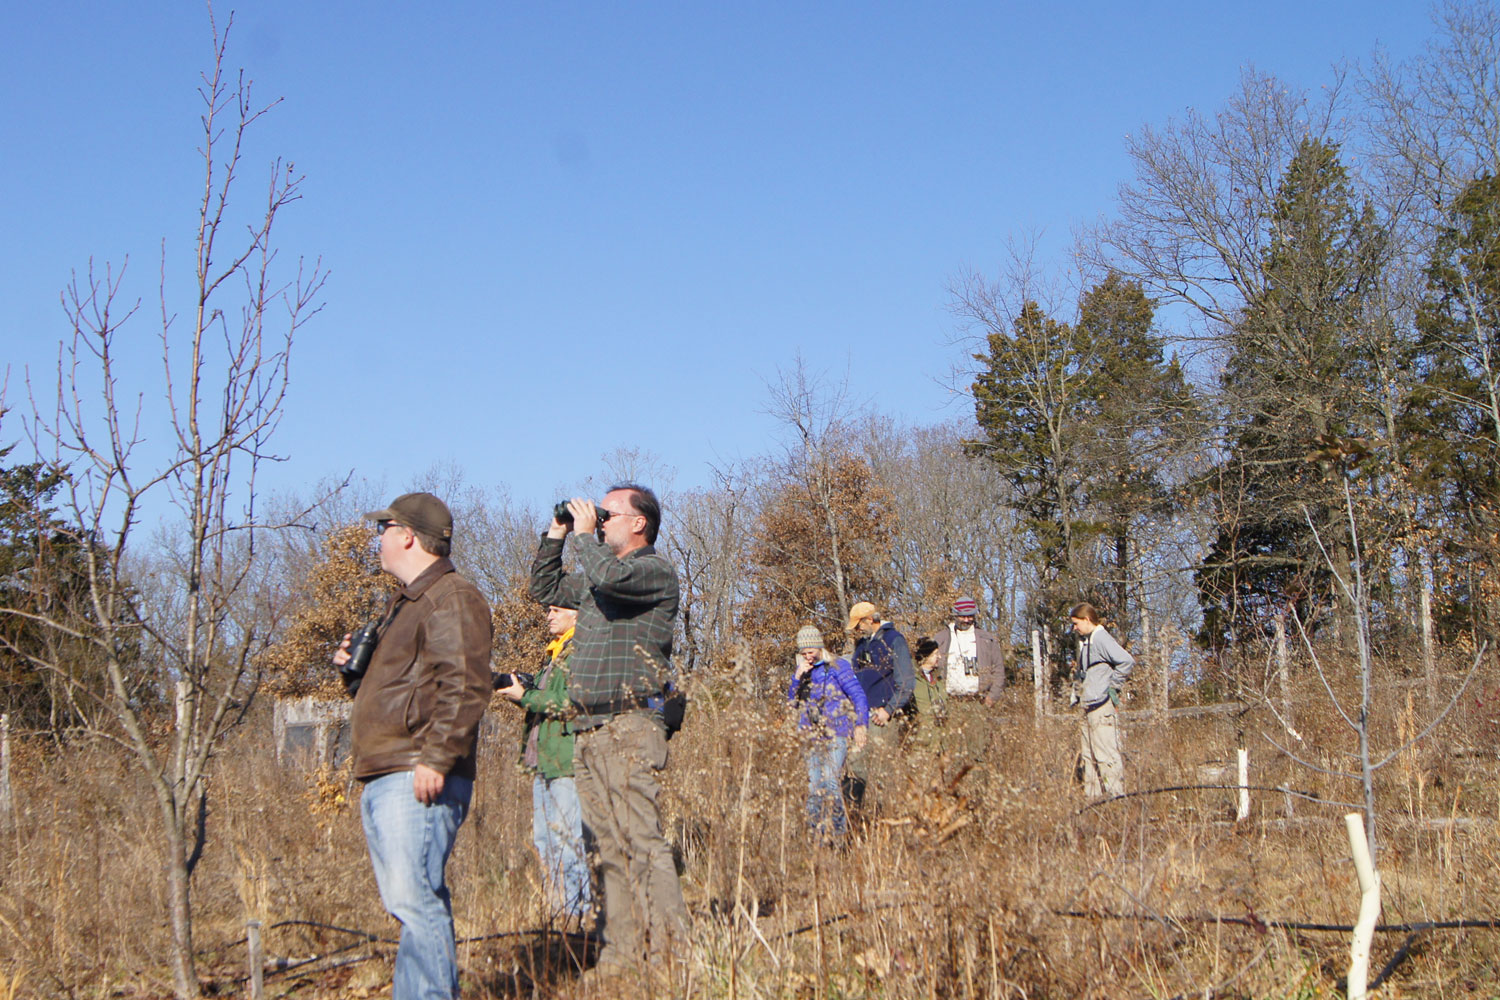 Birding the orchard at Chert Hollow Farm.